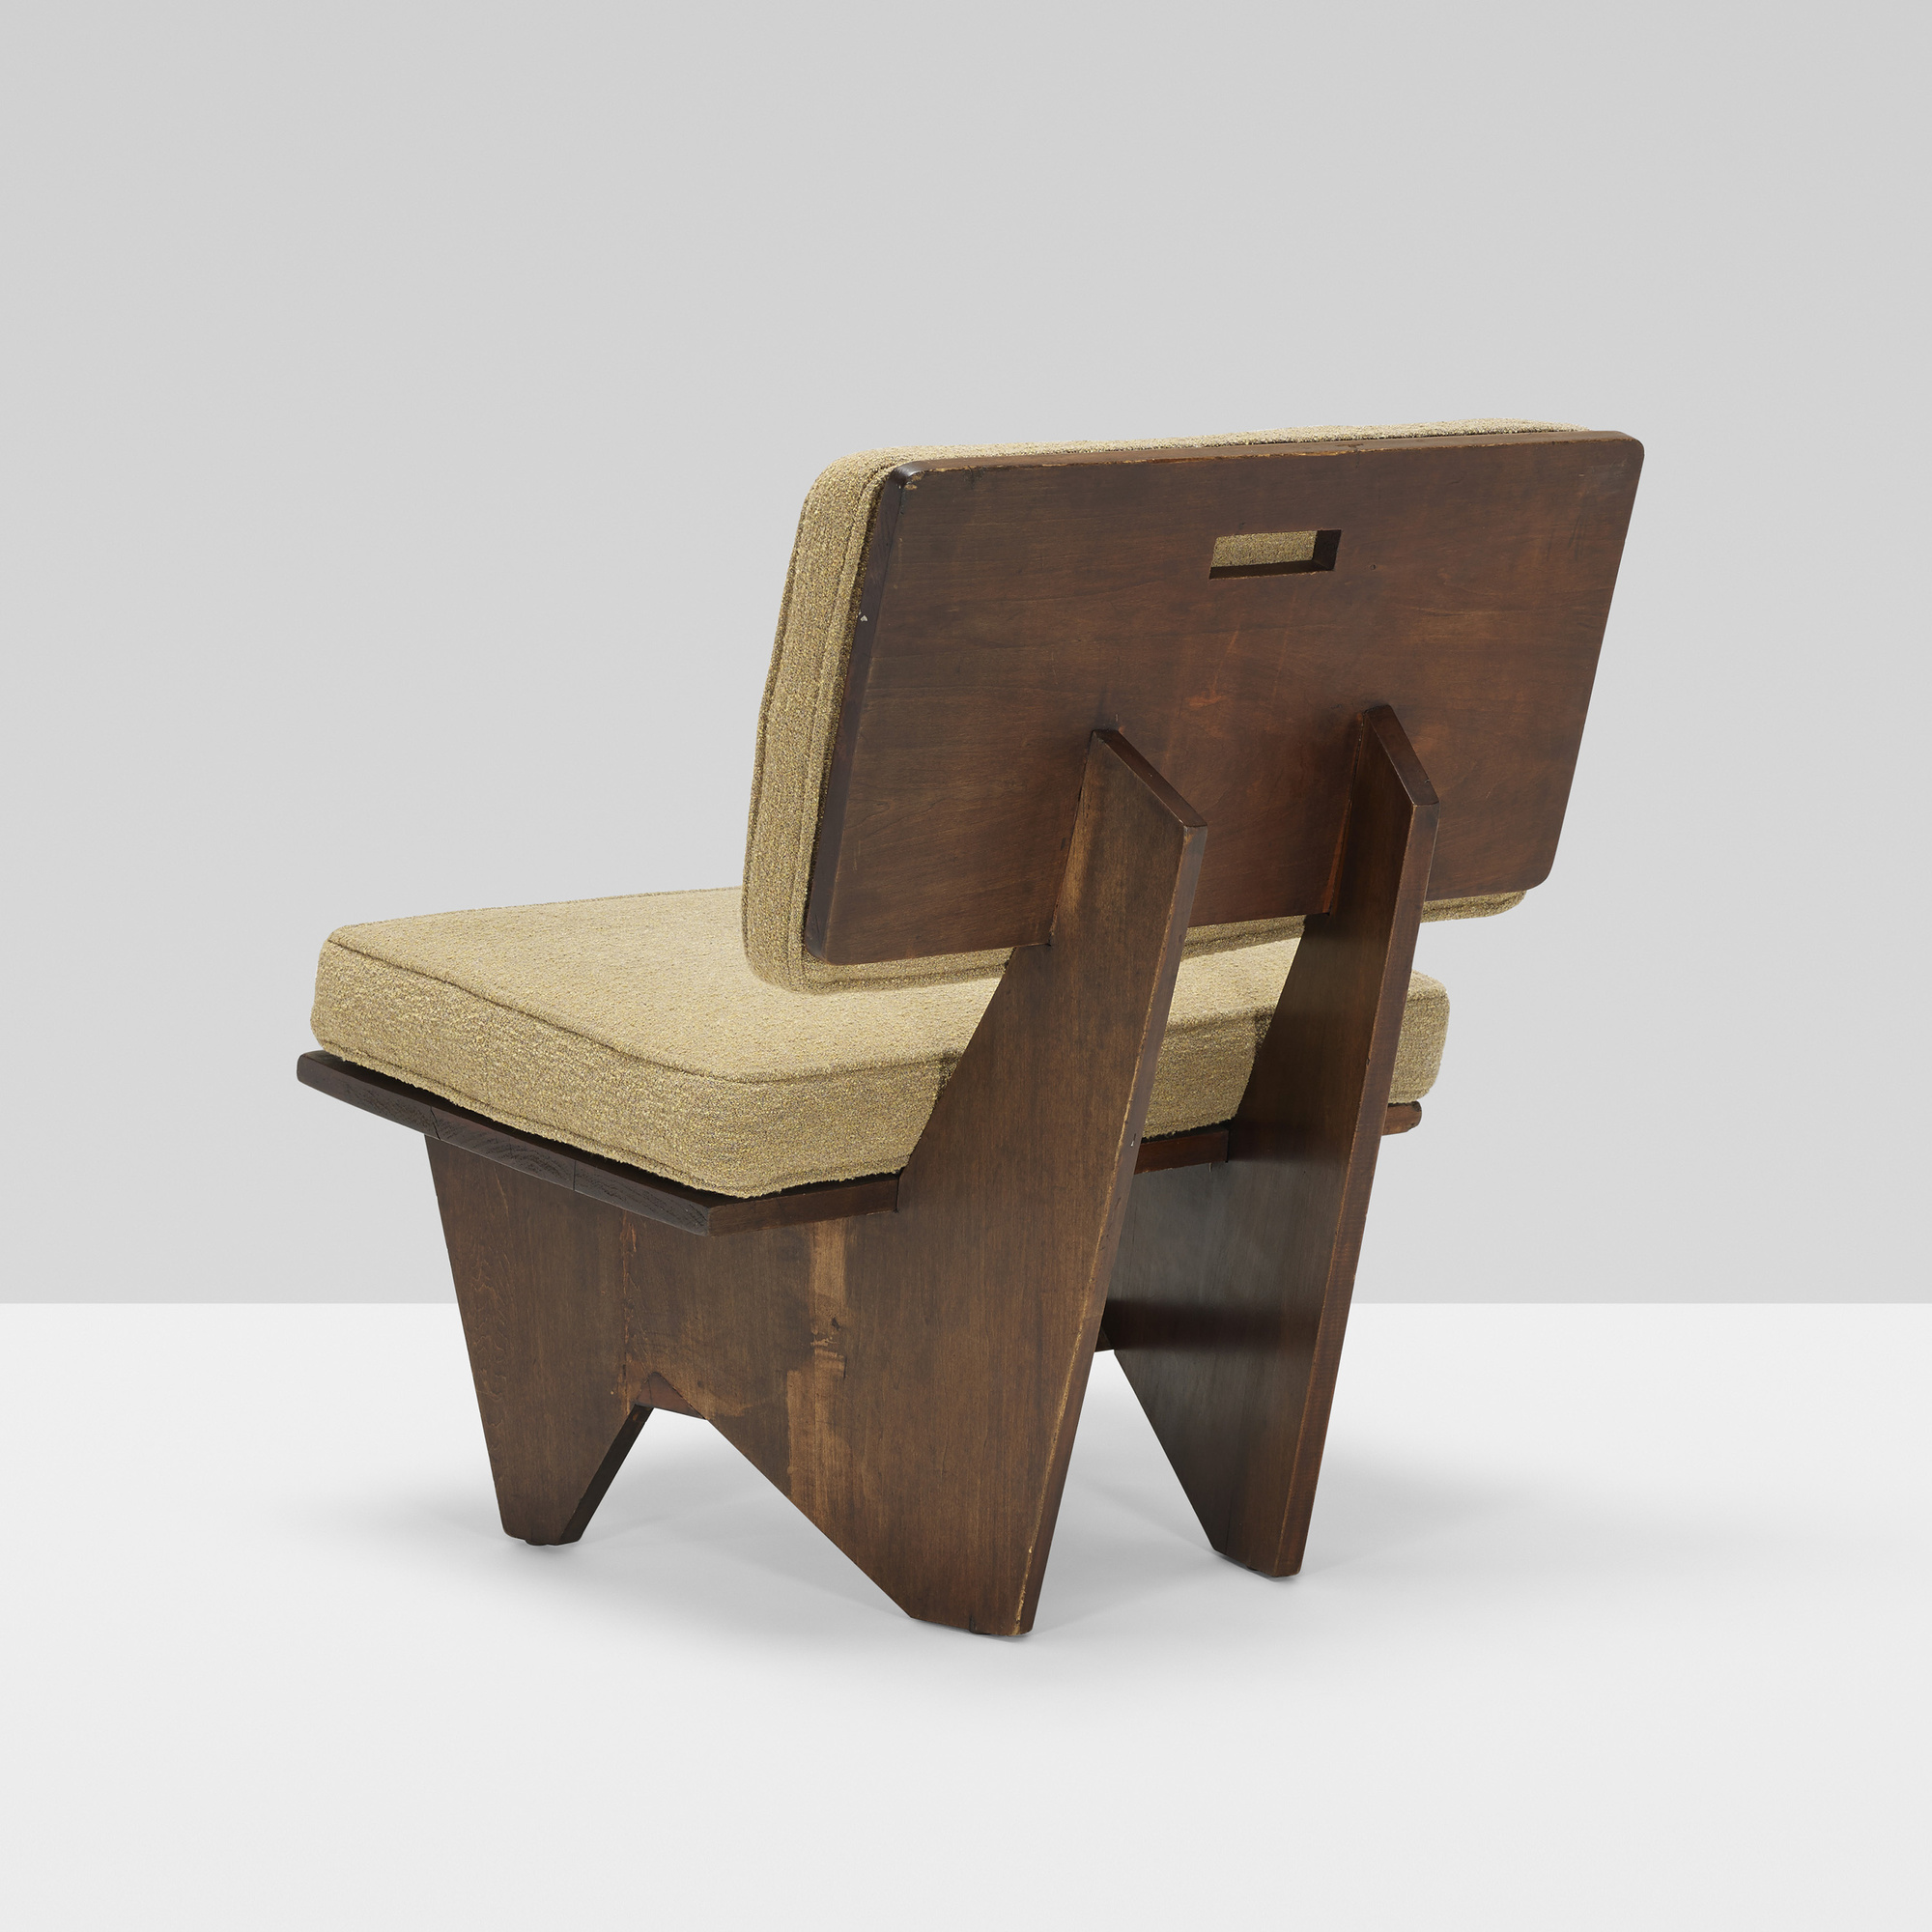 Terrific 185 Frank Lloyd Wright Lounge Chair From The Winn House Theyellowbook Wood Chair Design Ideas Theyellowbookinfo